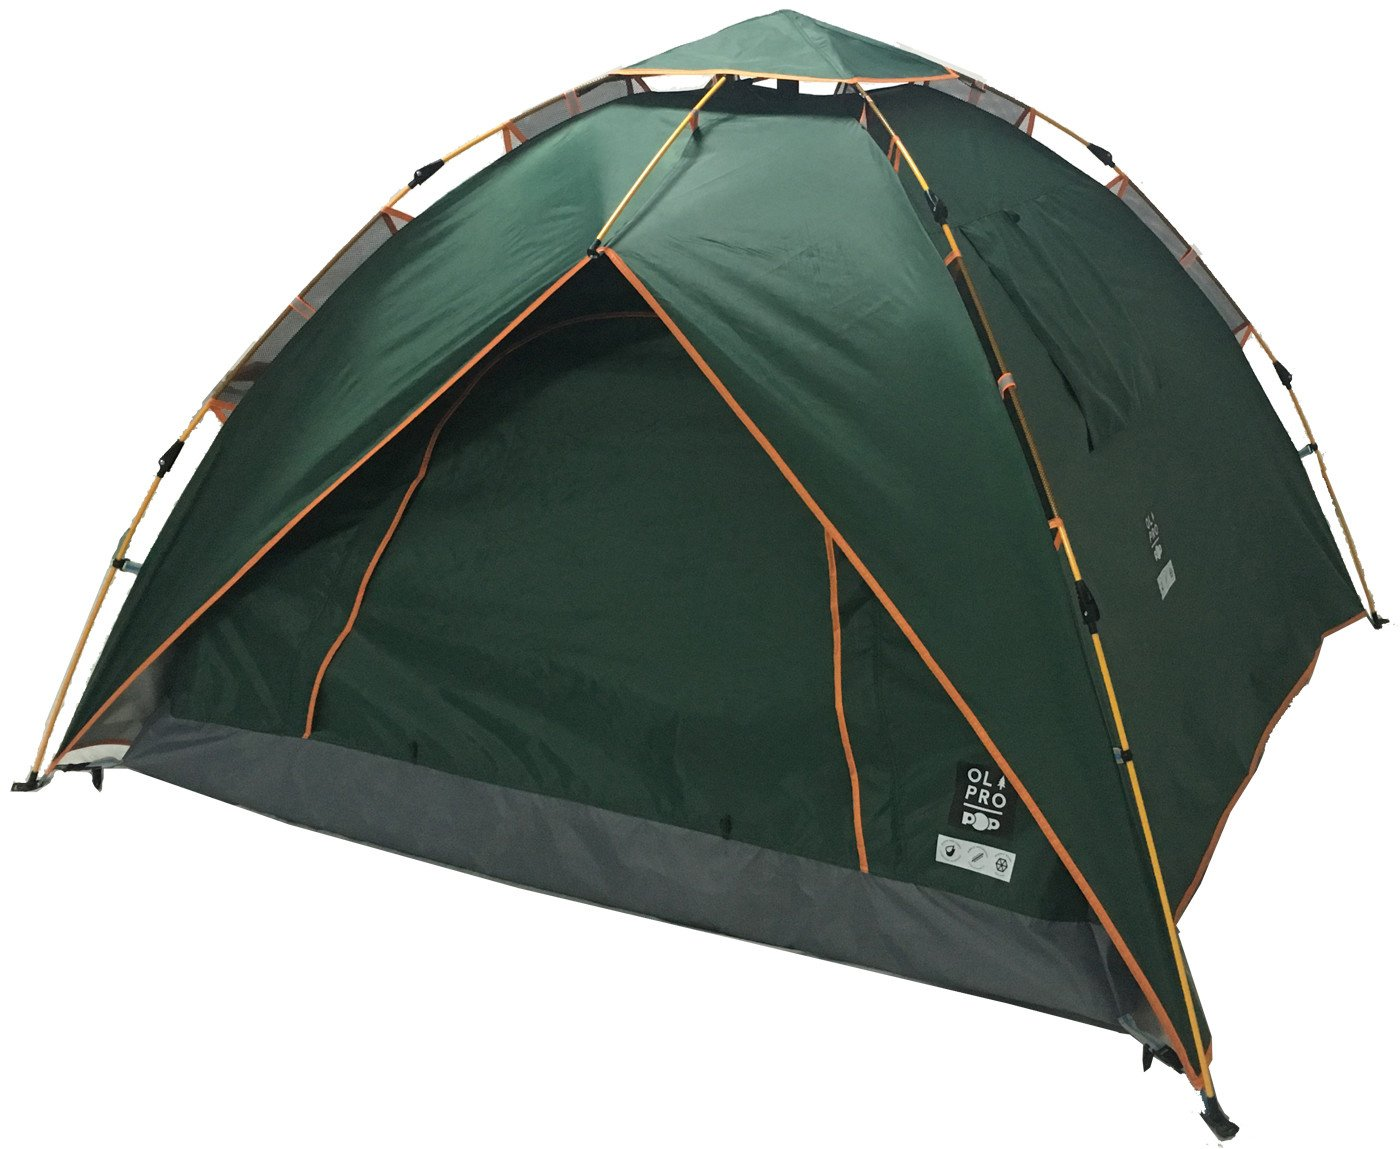 Olpro 2 Man 1 Room Pop Tent - Green